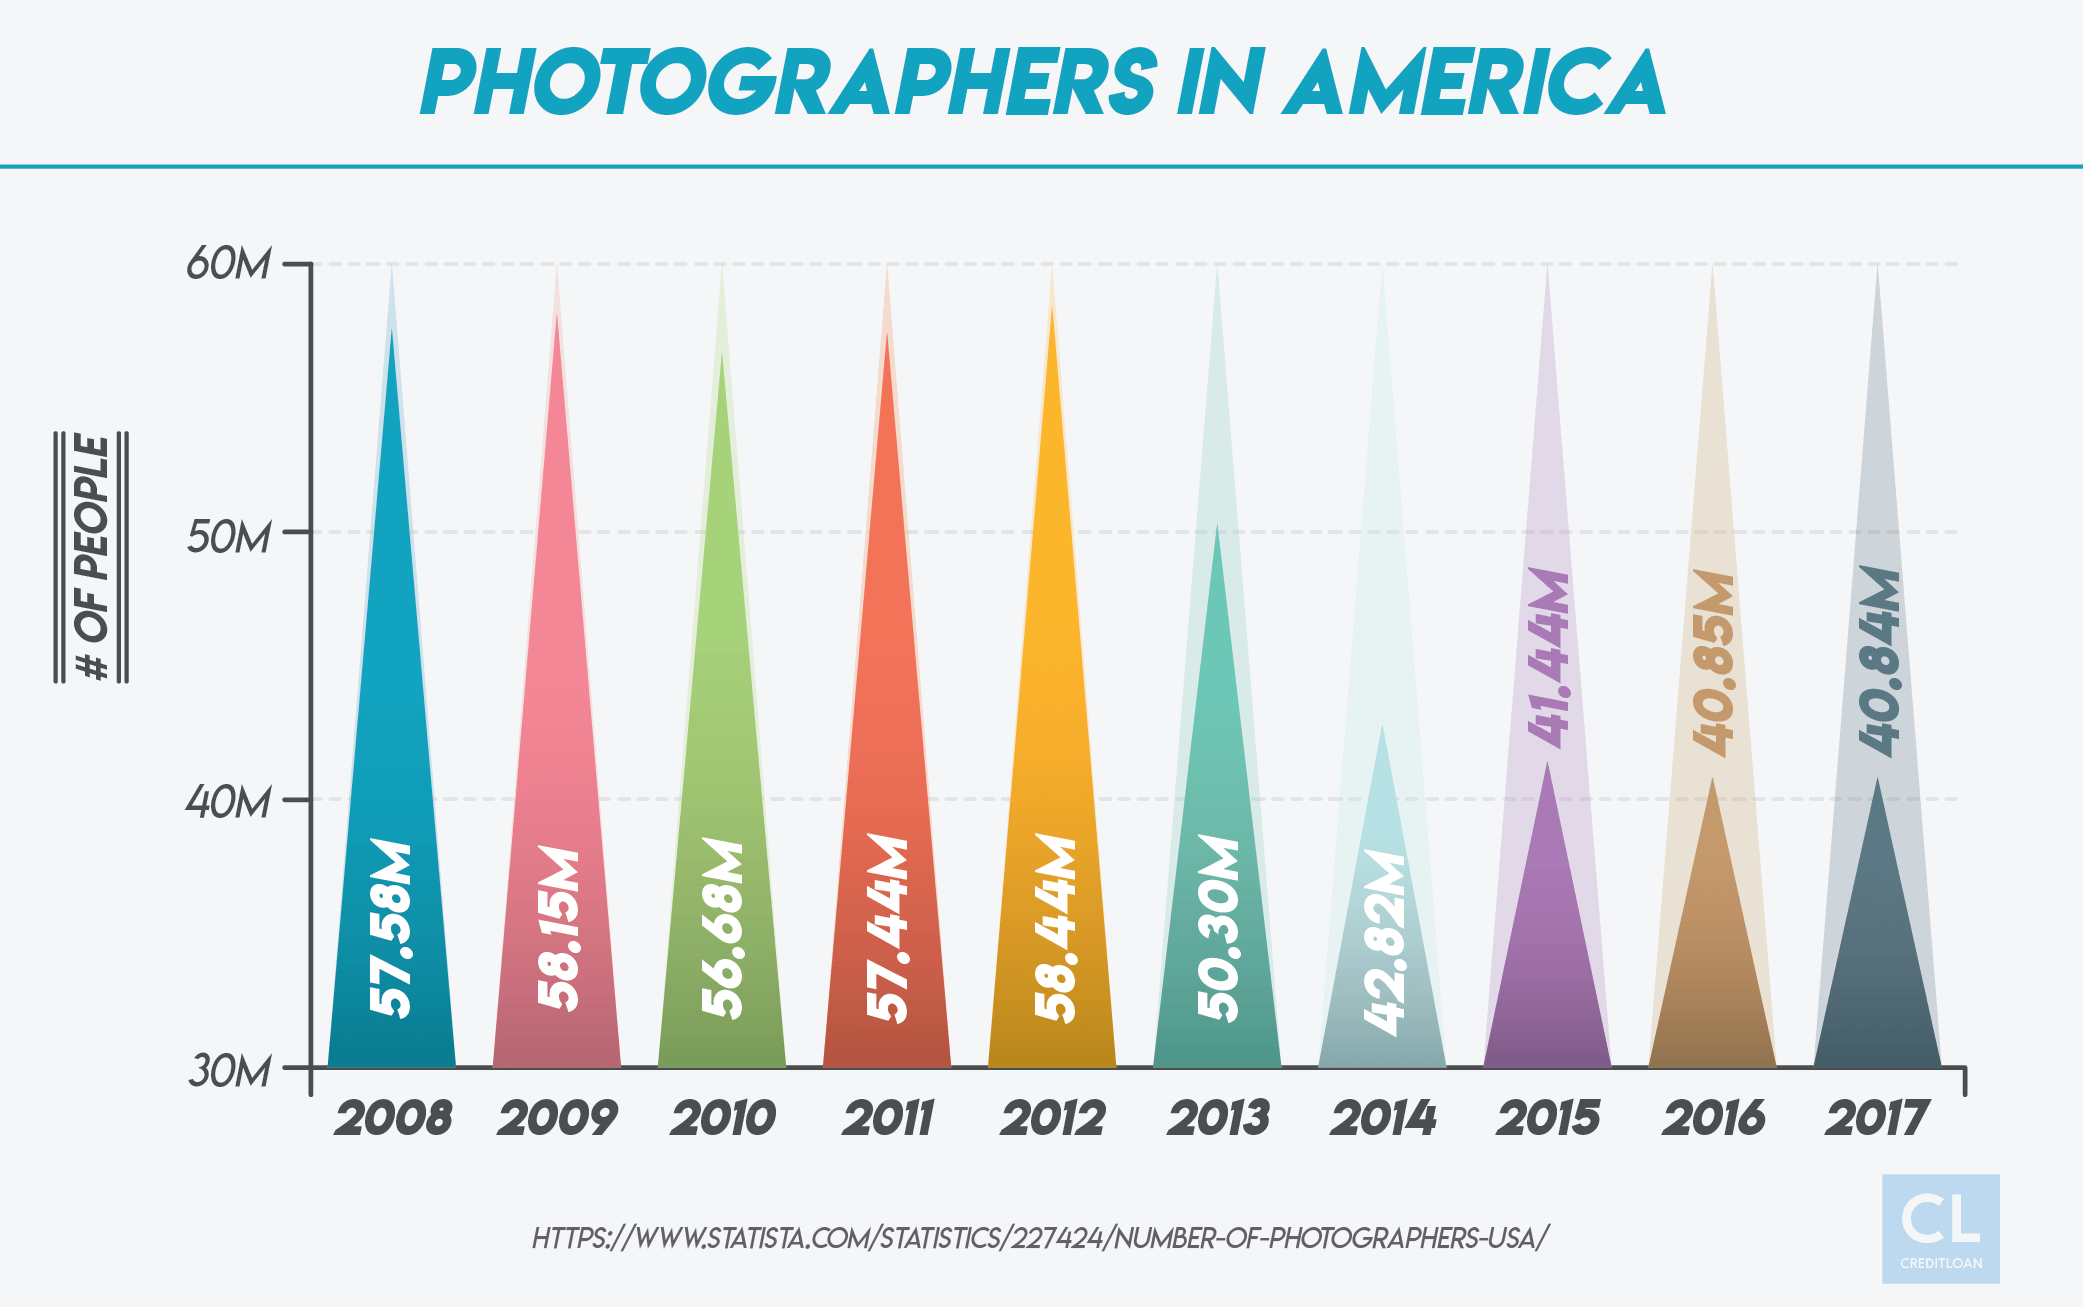 Photographers in America 2008-2017